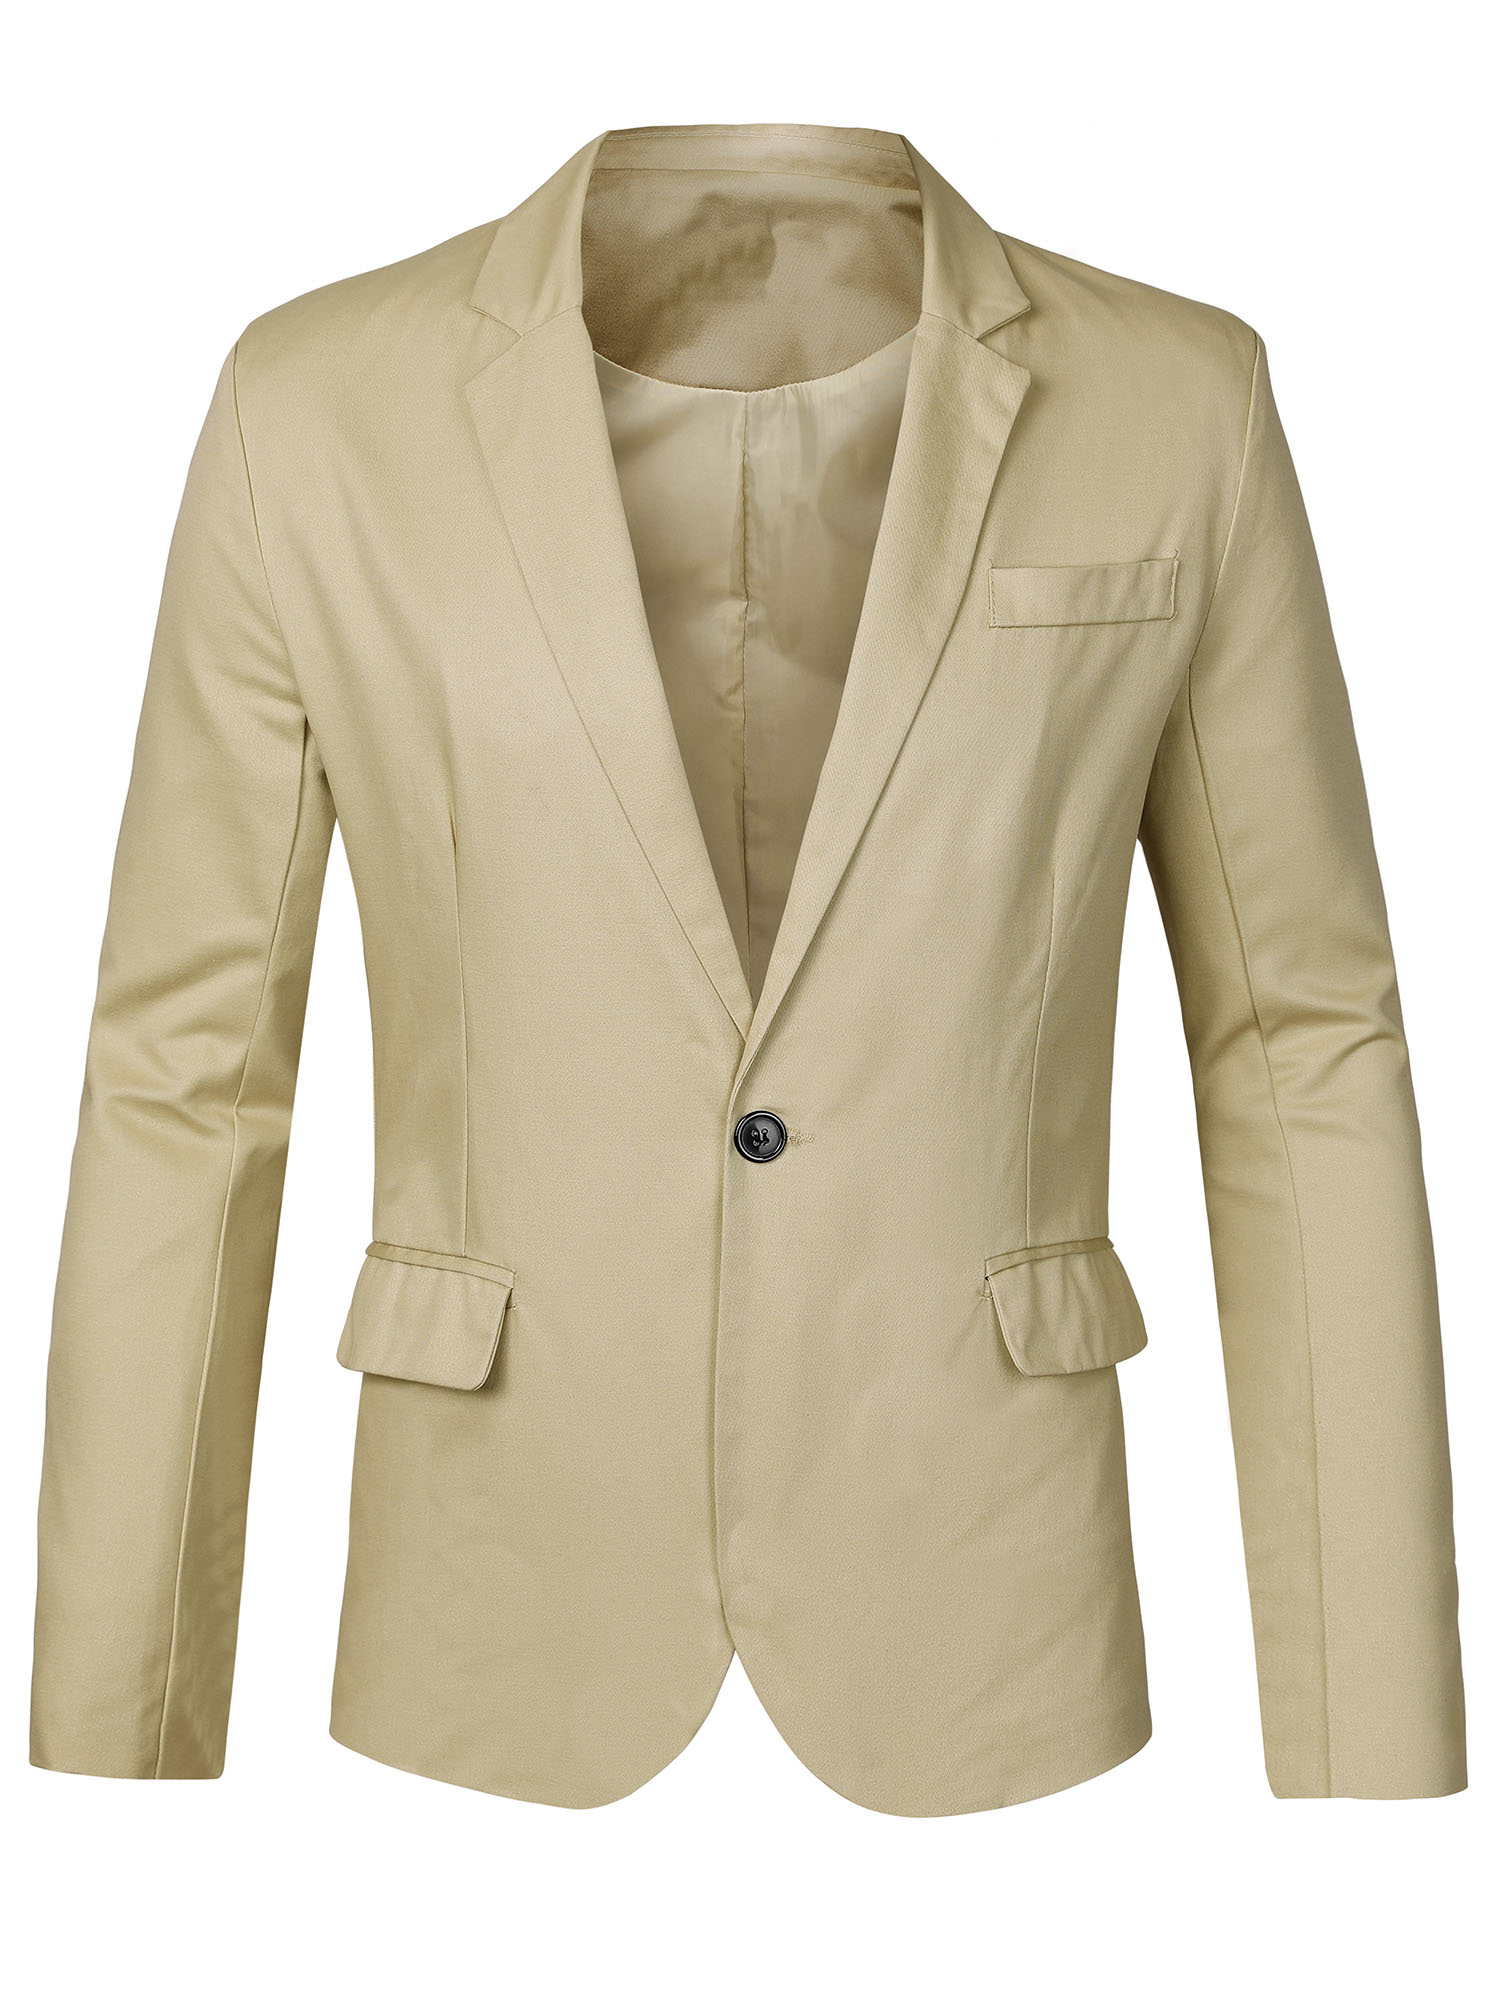 Men Notched Lapel Center-Vent Back Button Closed Casual Blazer L Beige